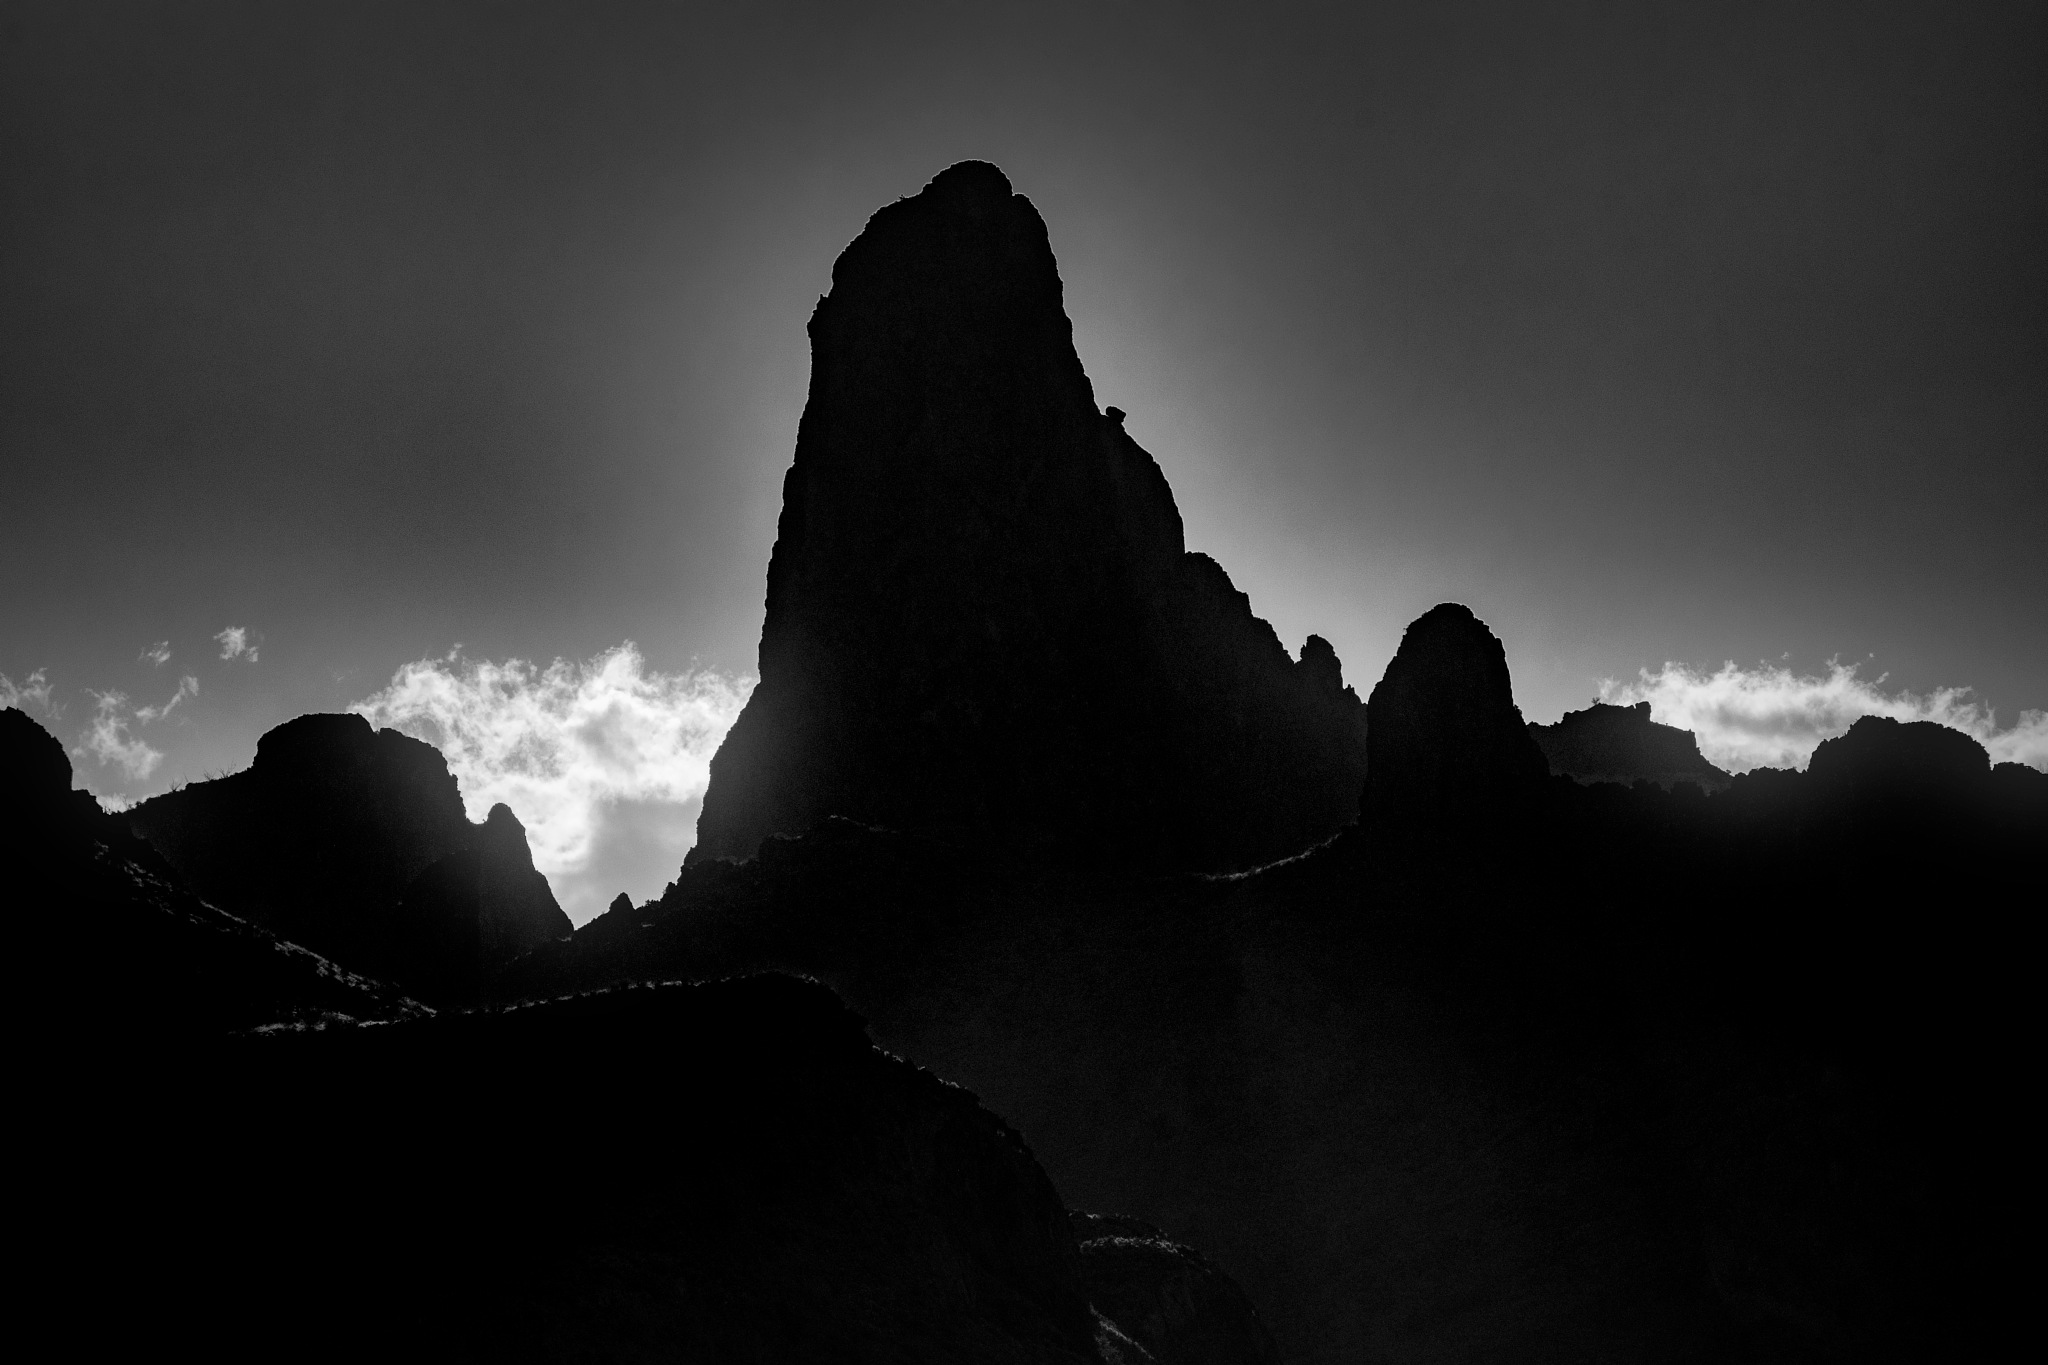 Into the Sun by JohnEllingson